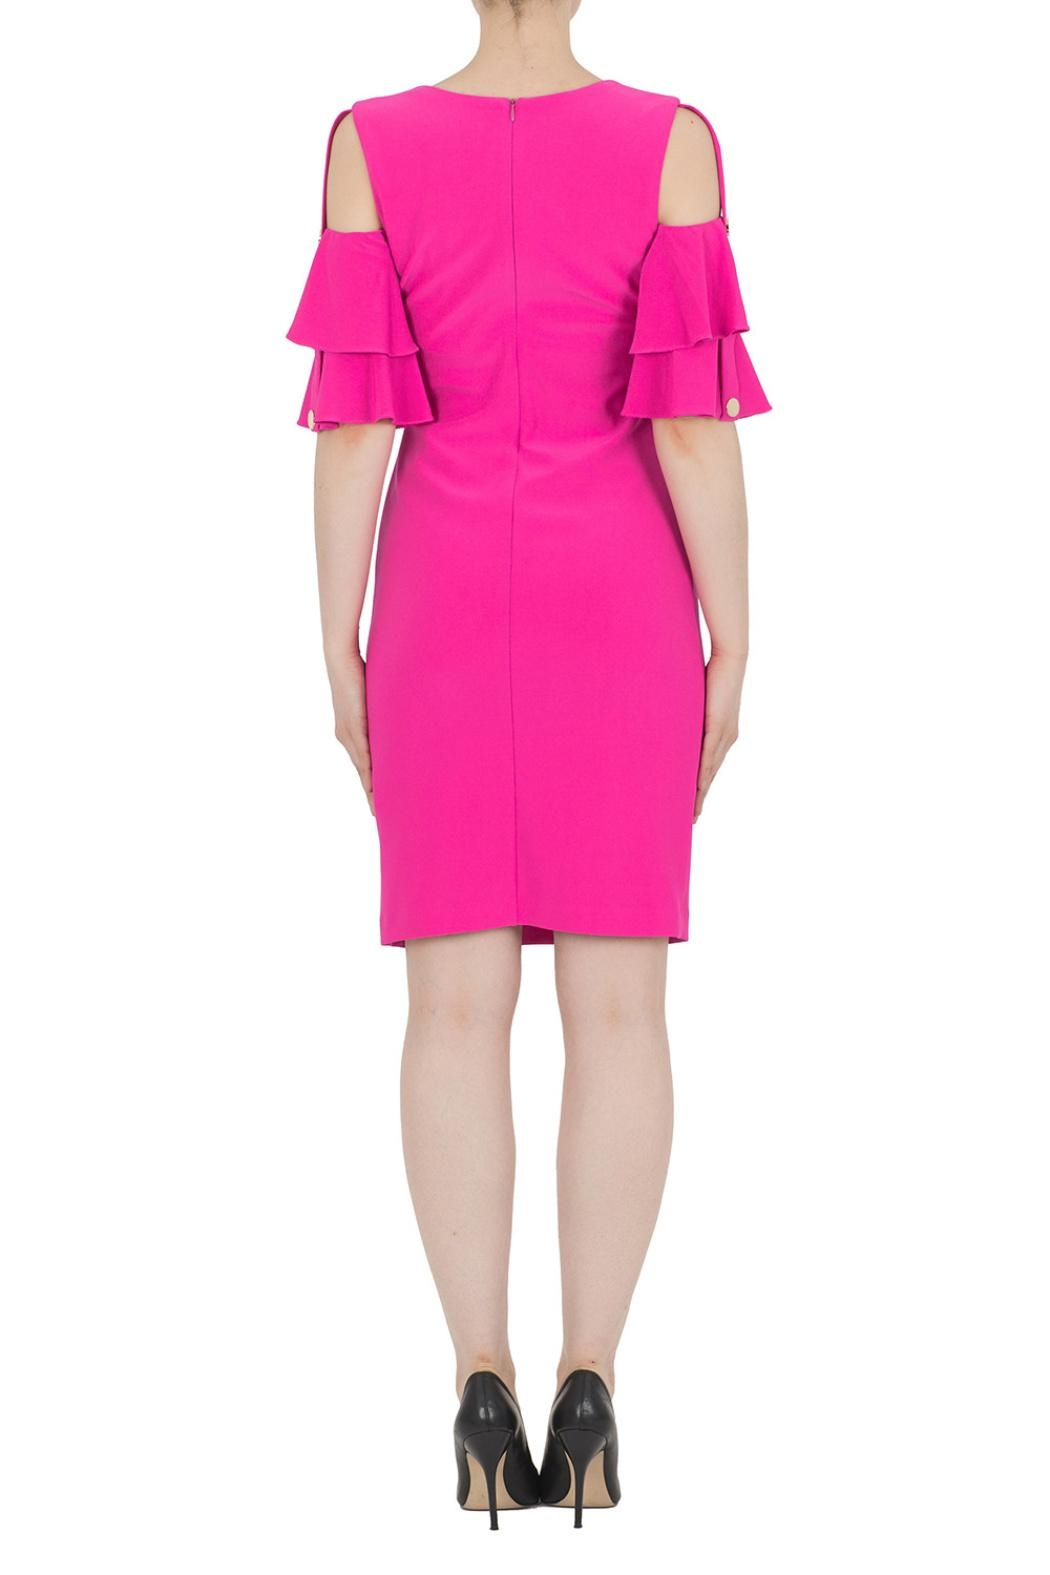 Joseph Ribkoff Pink Dress - Side Cropped Image